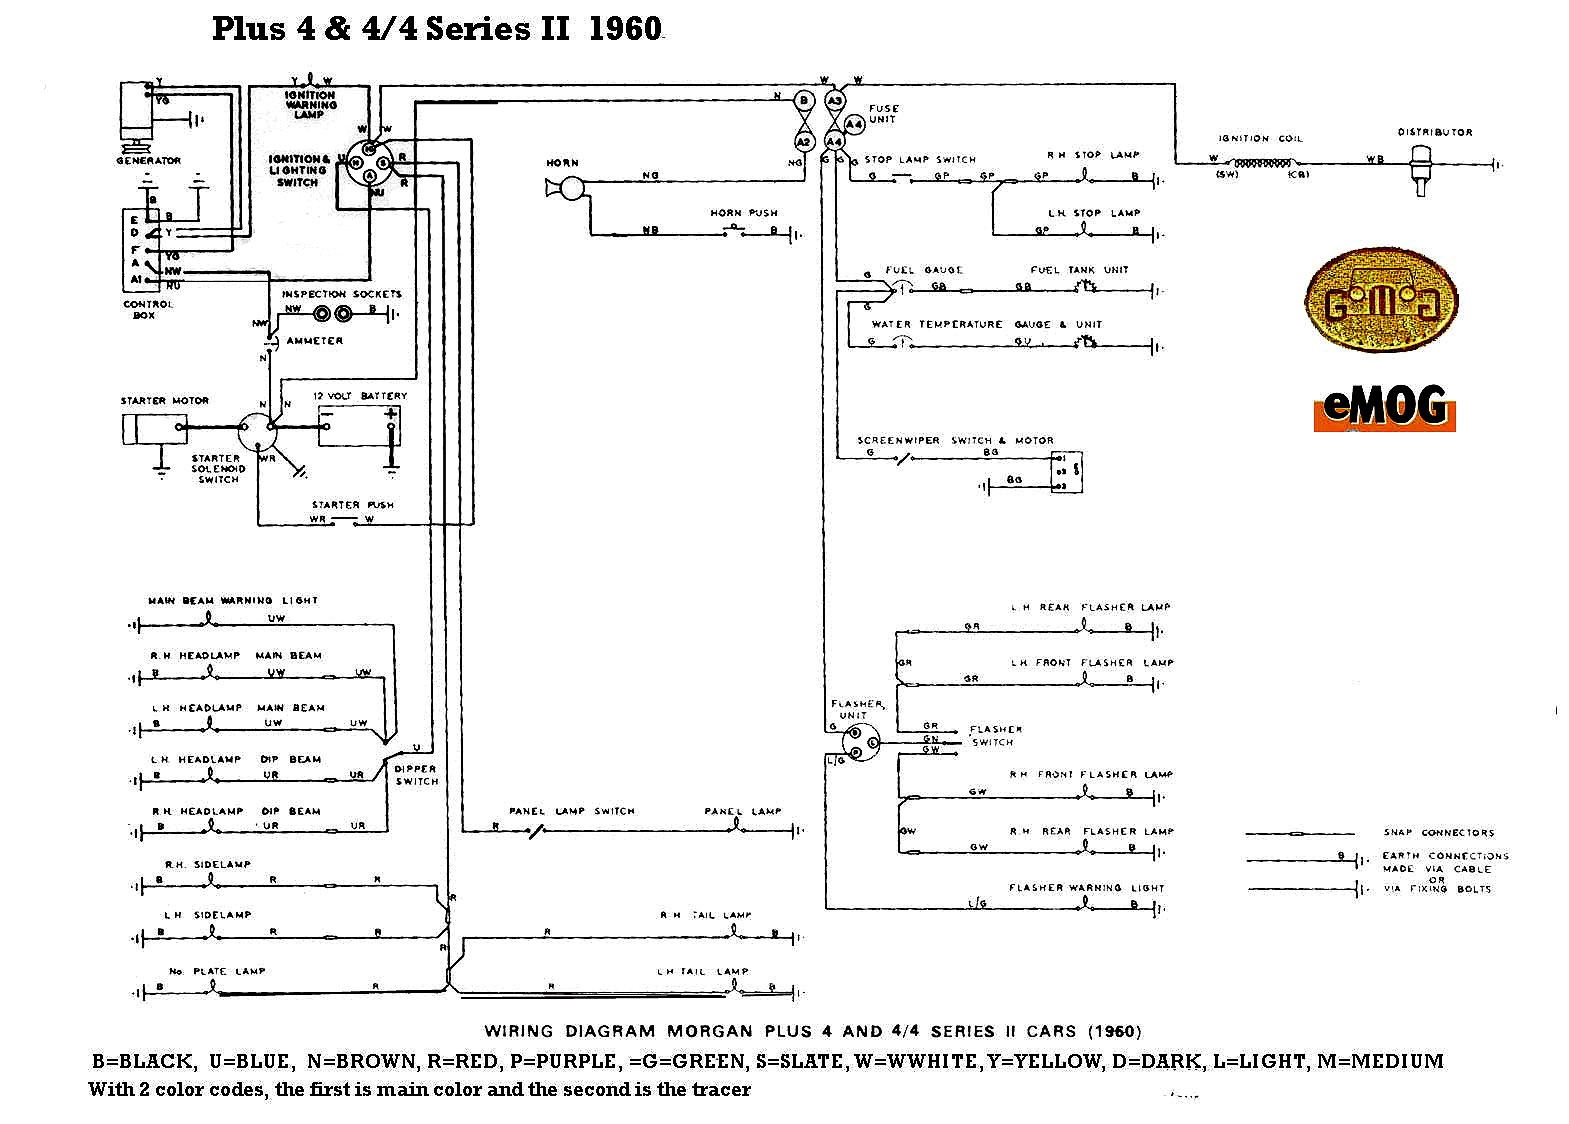 Morgan Plus 8 Wiring Diagram